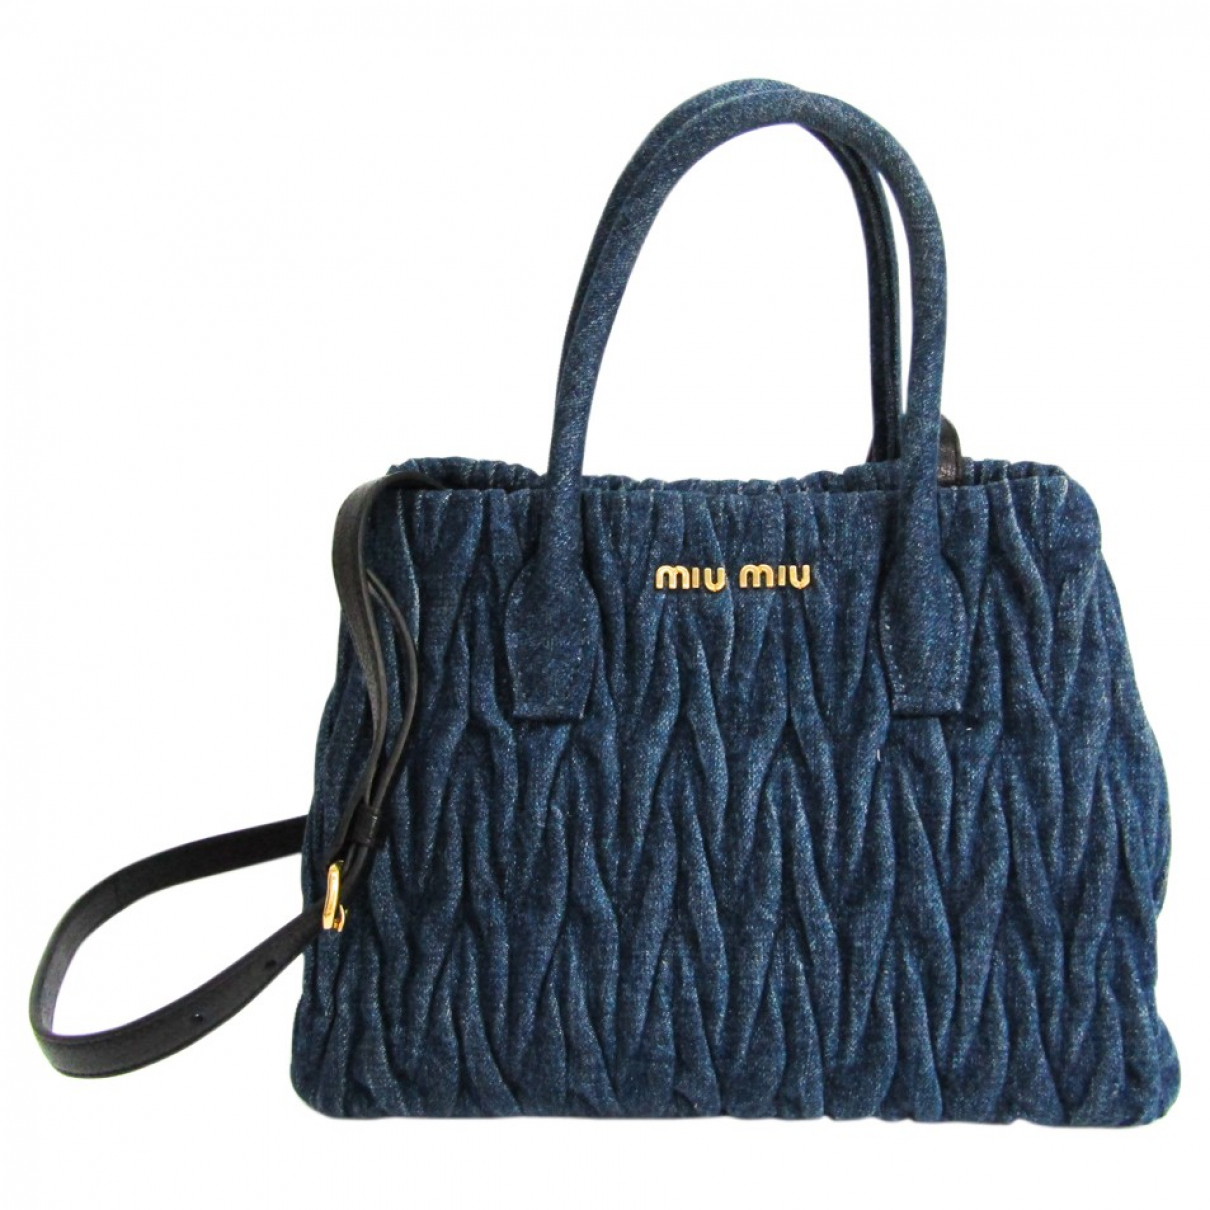 Miu Miu N Black Denim - Jeans handbag for Women N